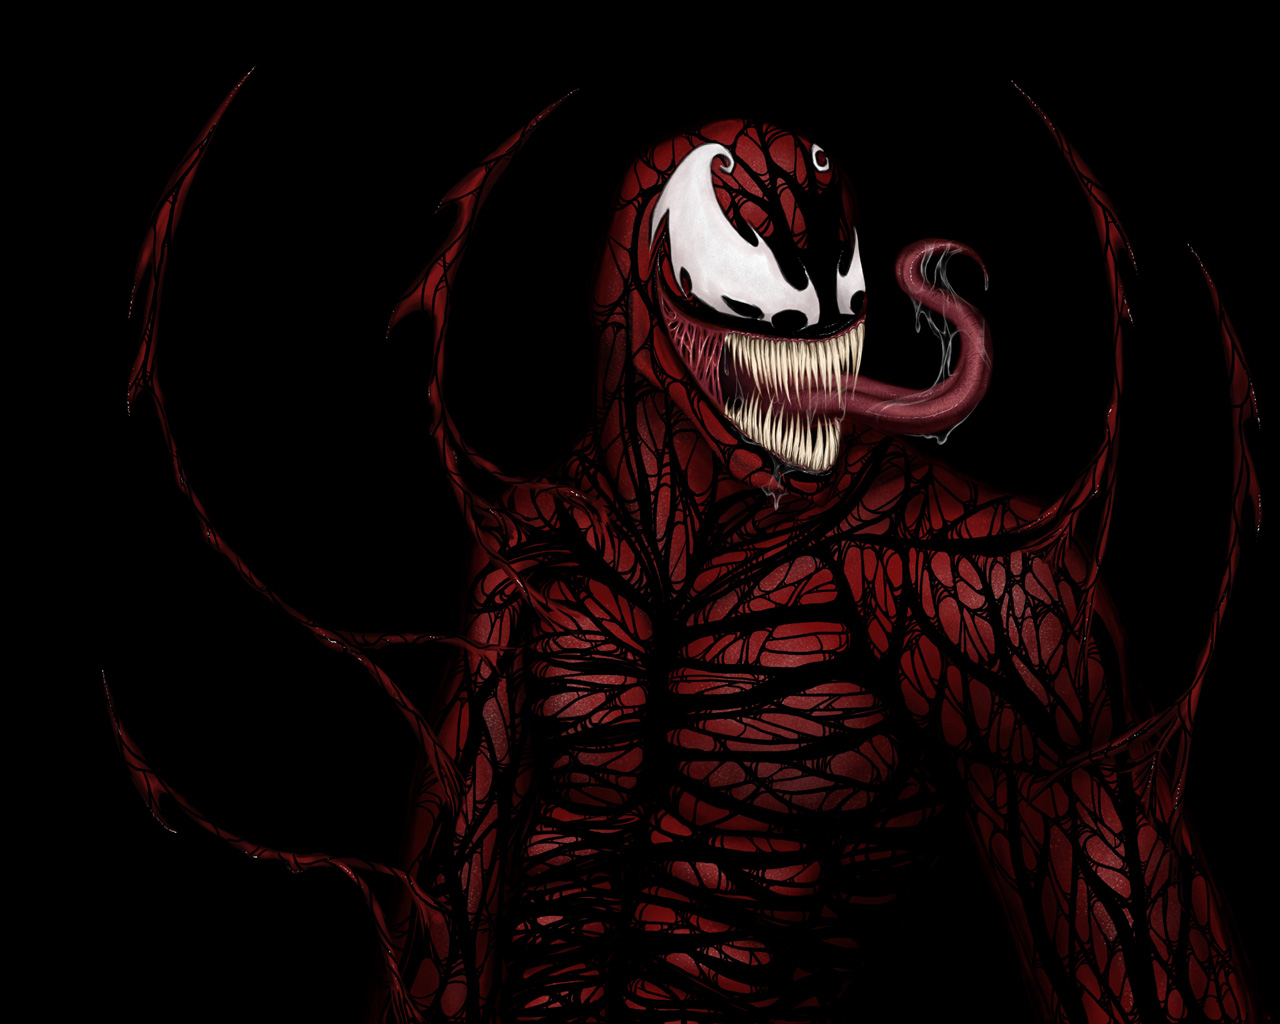 wallpaper hd spiderman venom carnage taringa